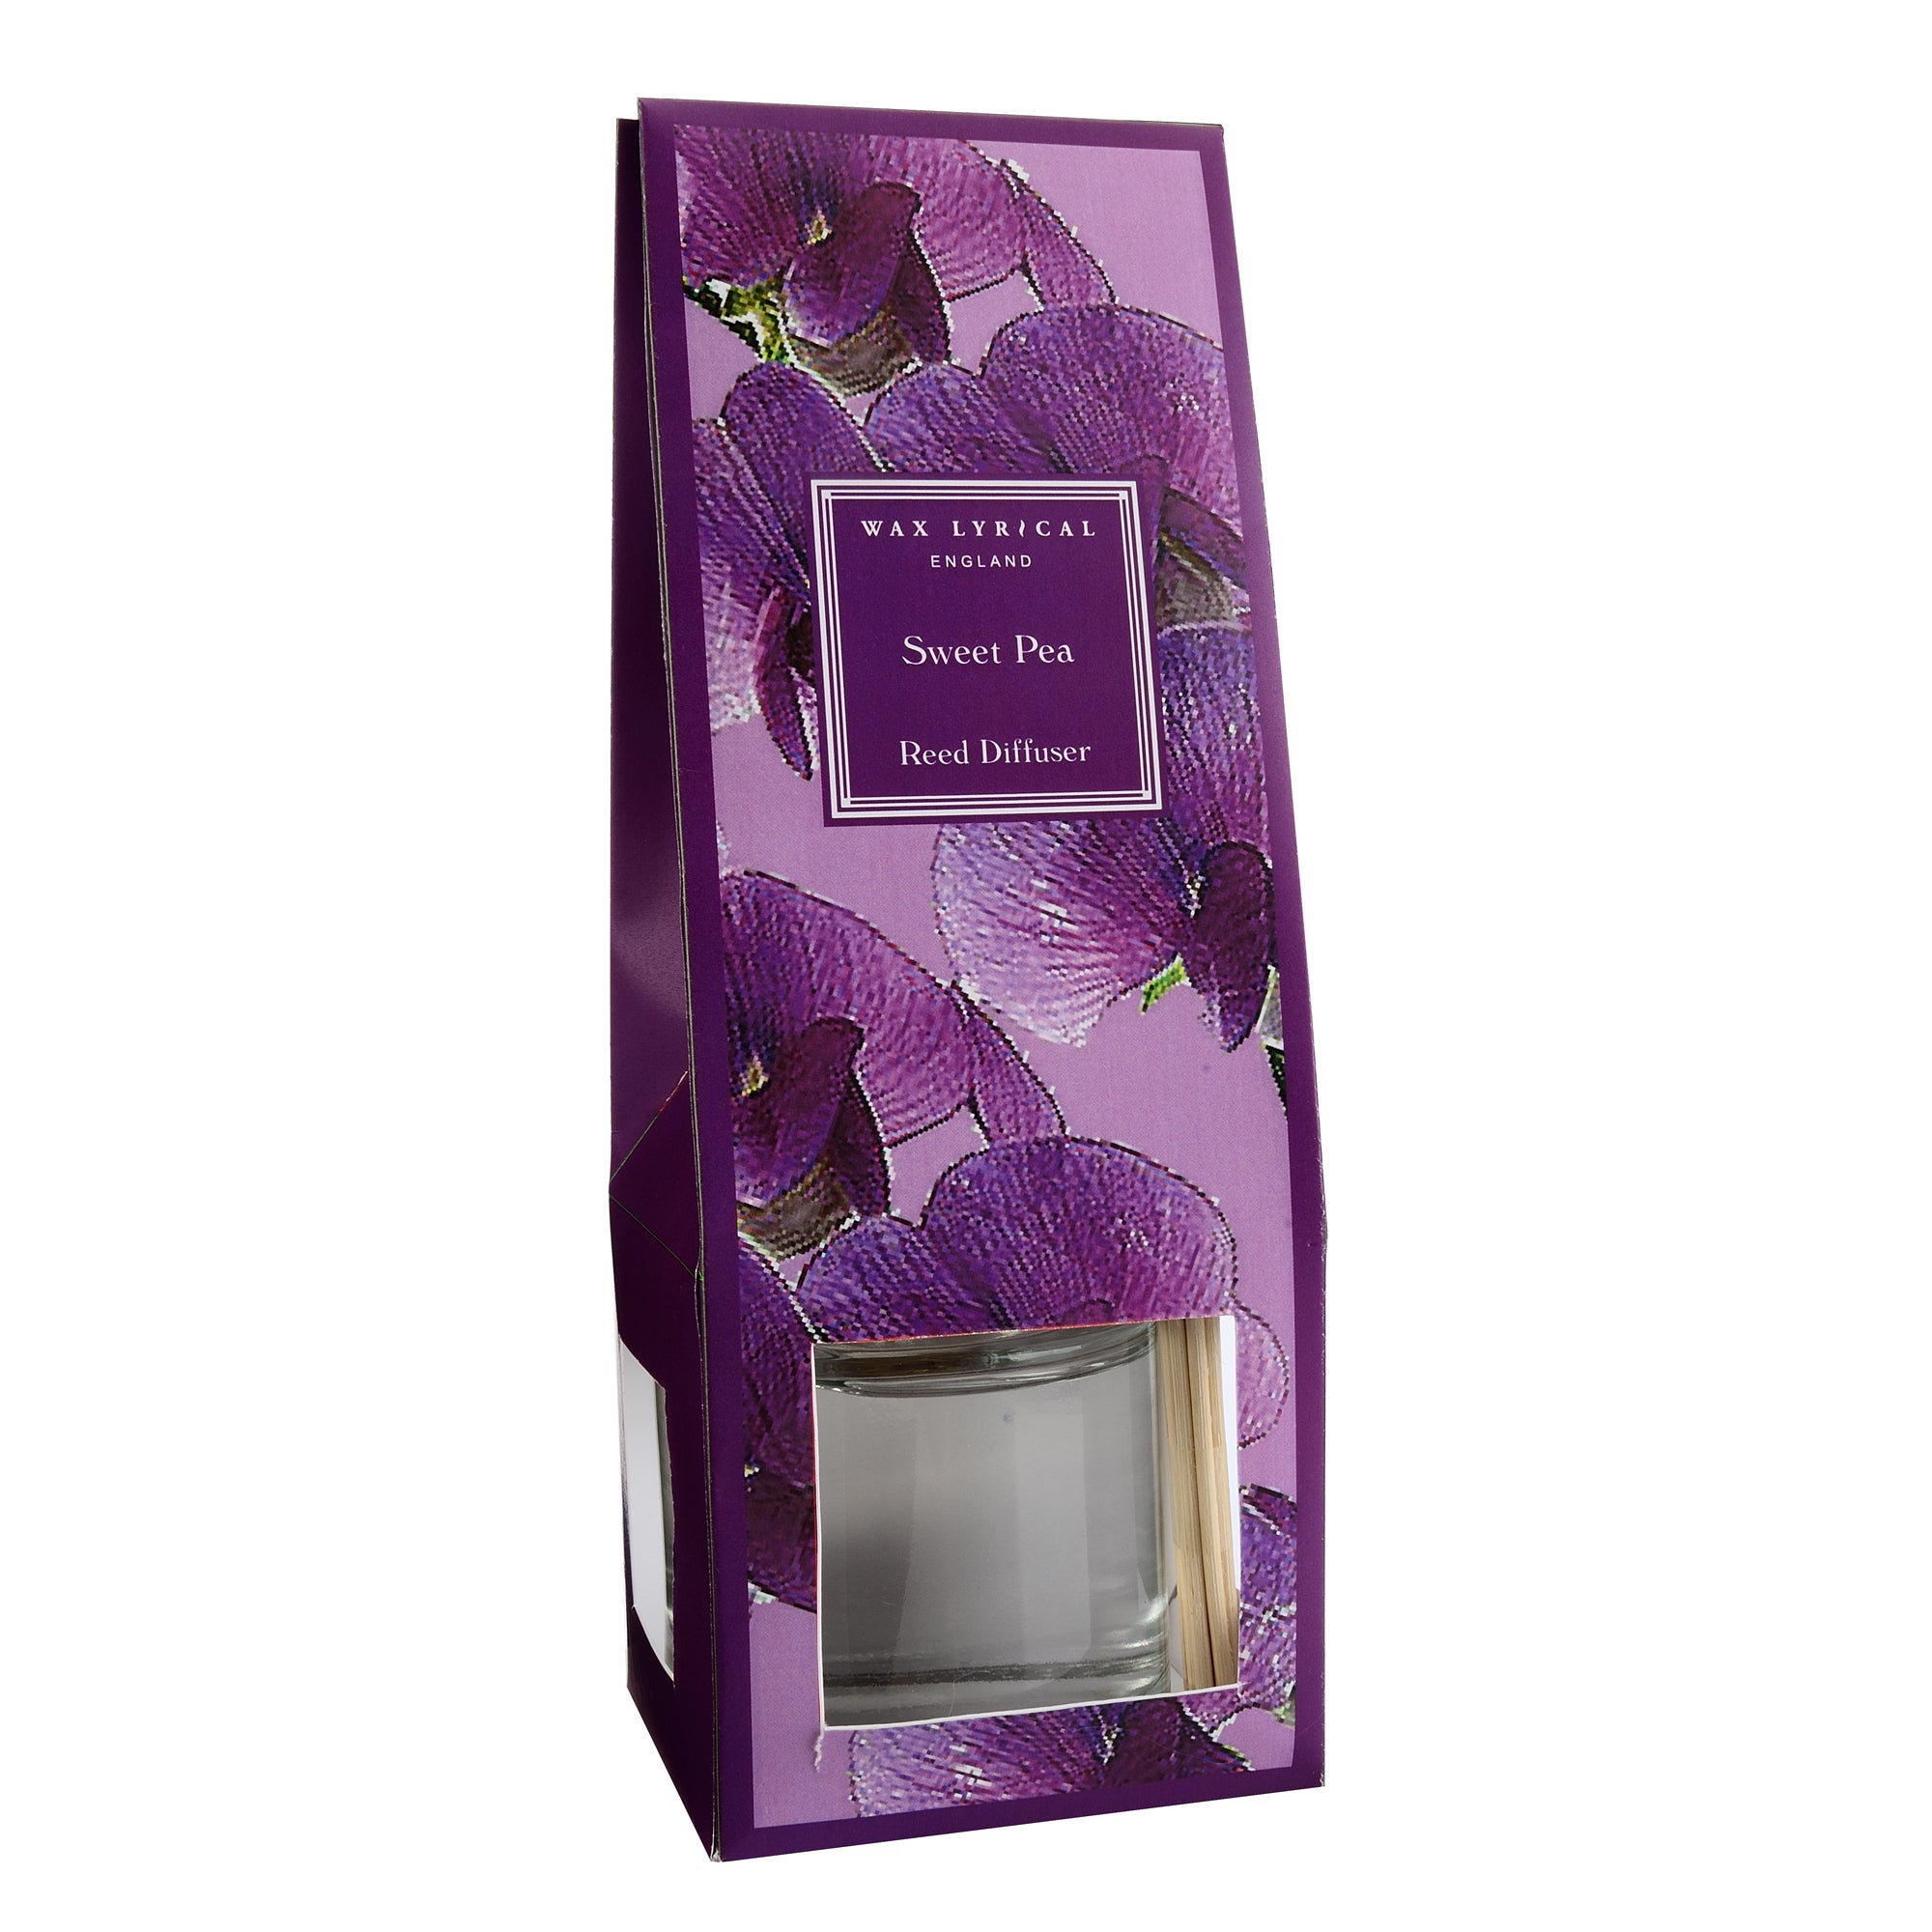 Wax Lyrical Sweet Pea 200ml Reed Diffuser